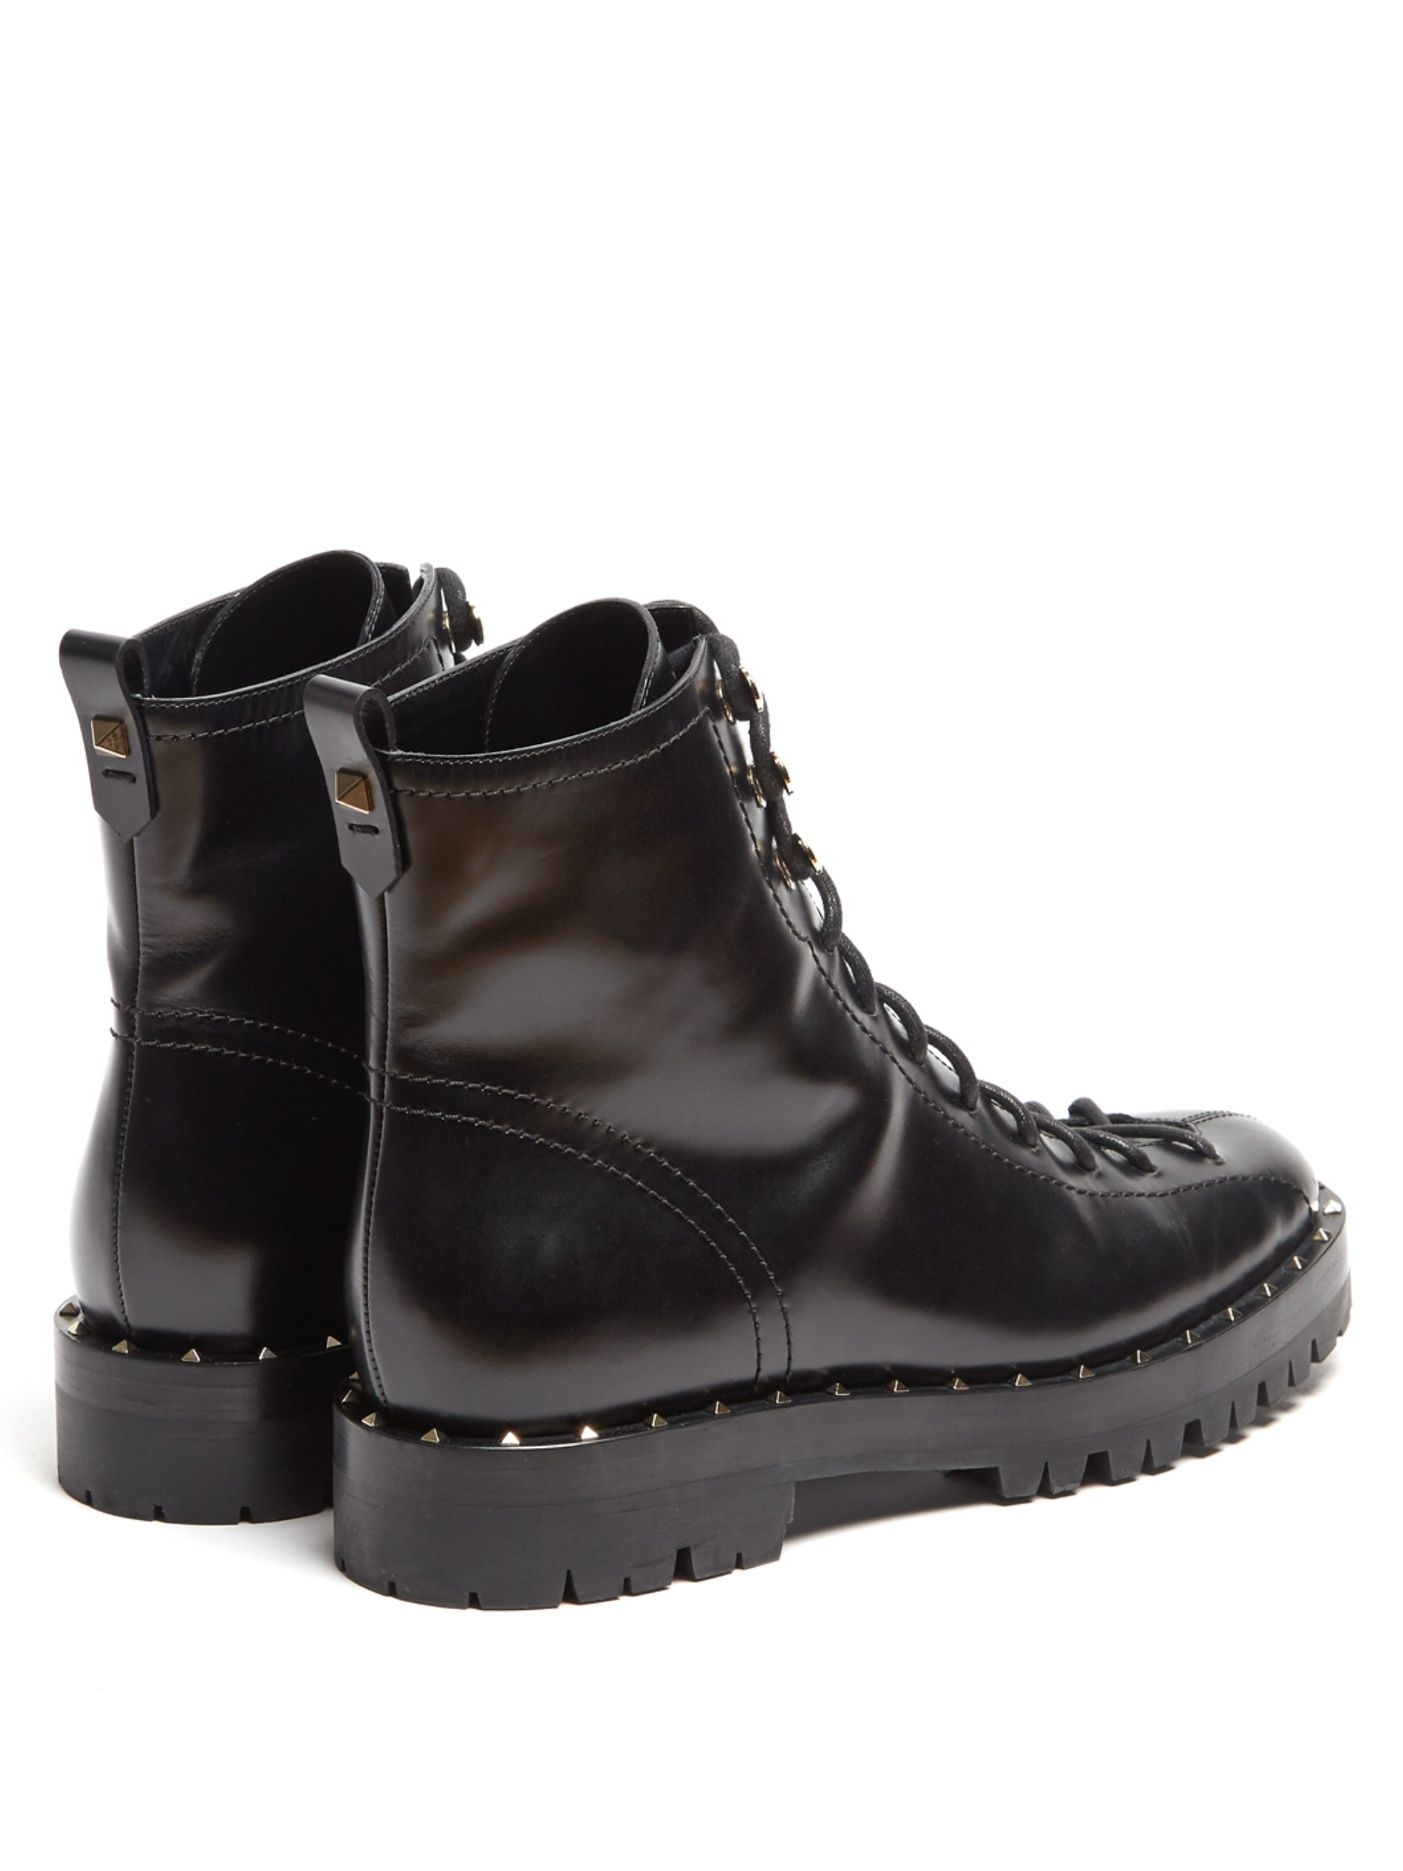 68c30bb7f96 Click here to buy Valentino Soul Rockstud trek-sole leather ankle ...